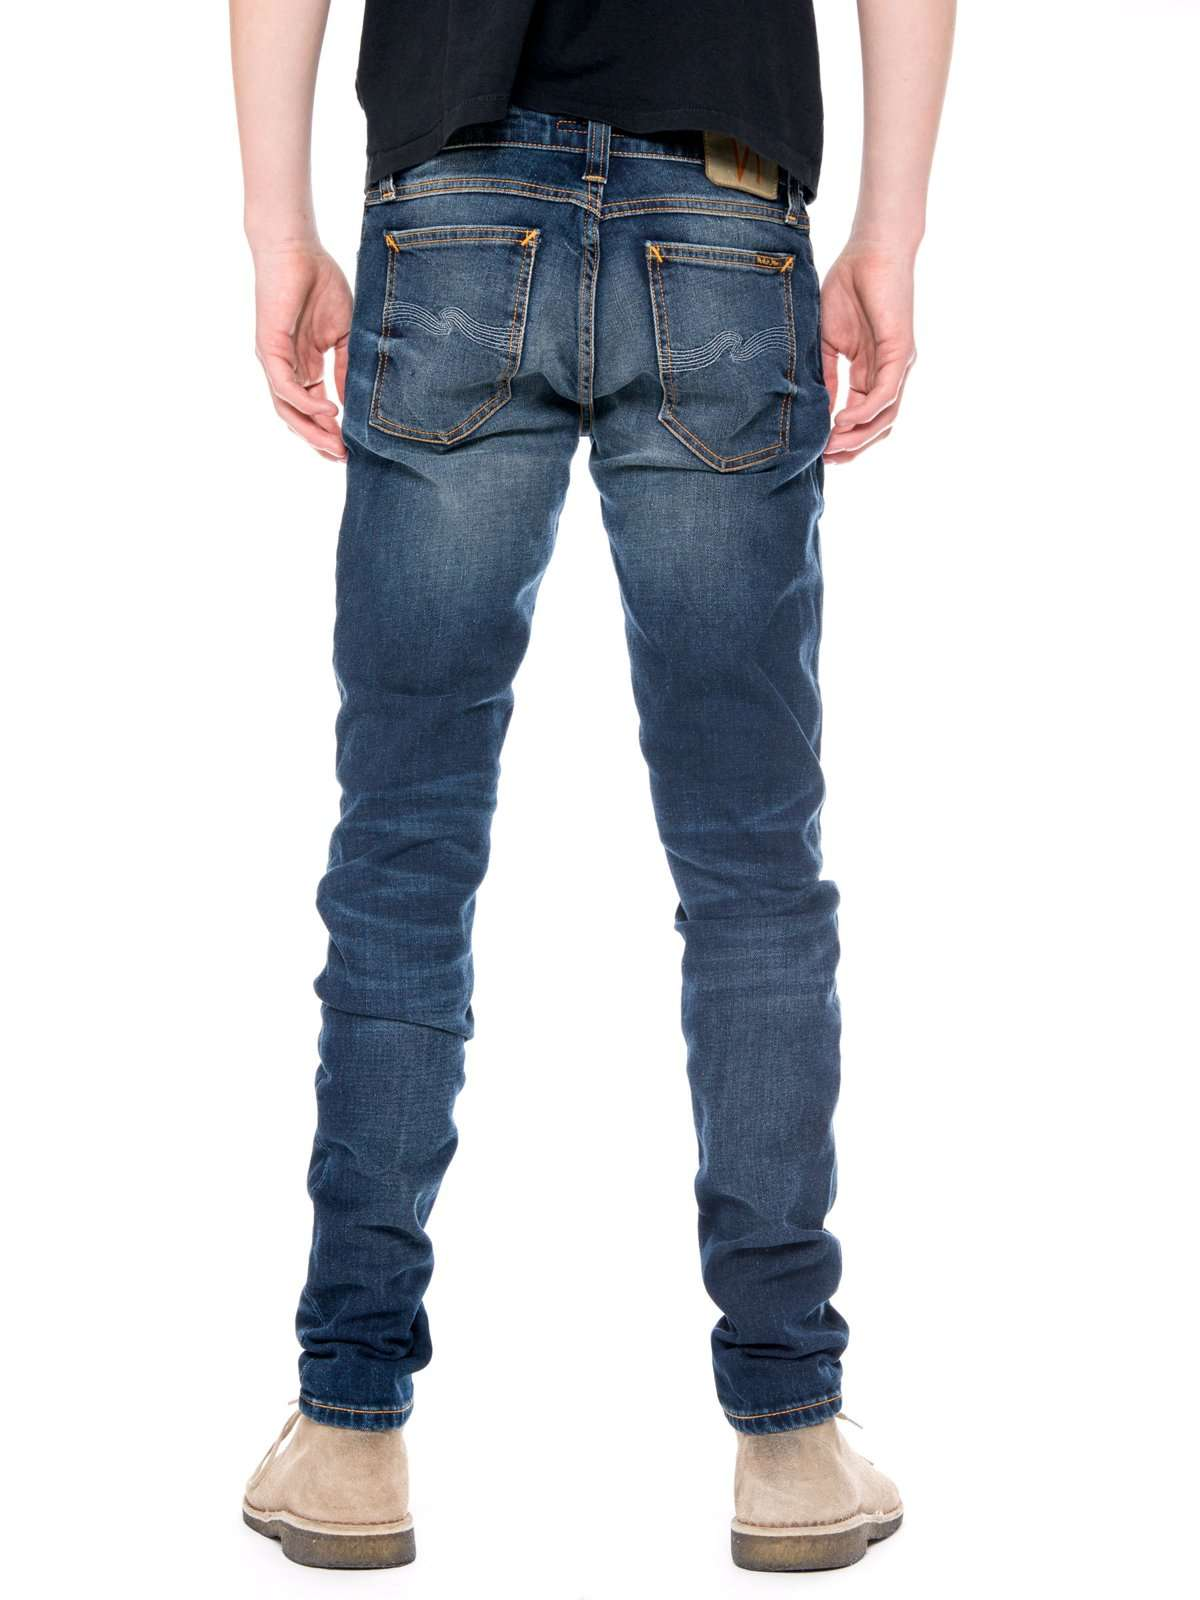 947220c45b80ab Details about Nudie Jeans Skinny Lin Dark Double Indigo L32